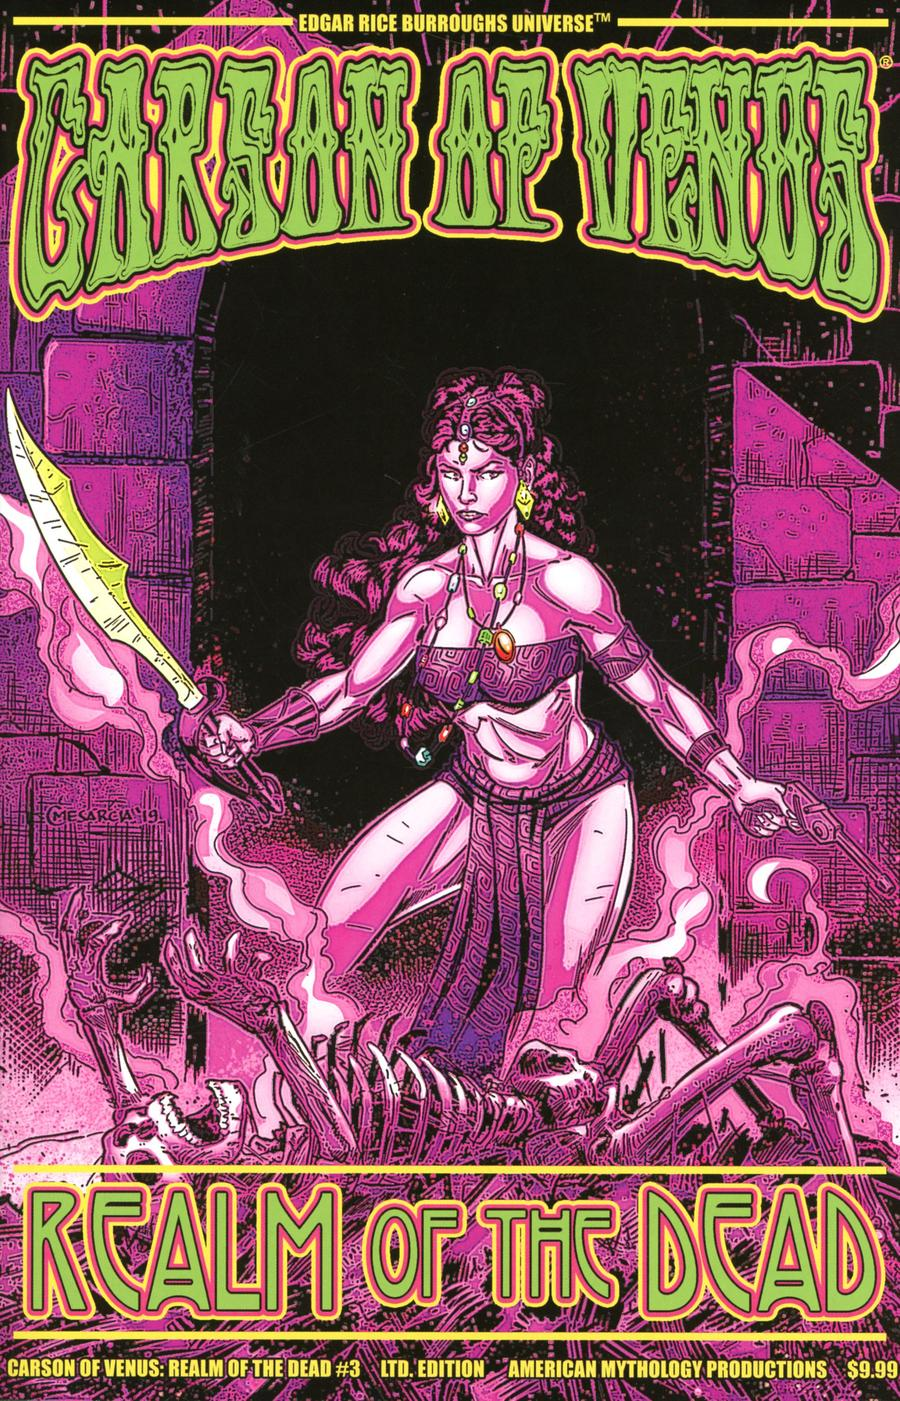 Carson Of Venus Realm Of The Dead #3 Cover B Limited Edition Cyrus Mesarcia Pulp Cover